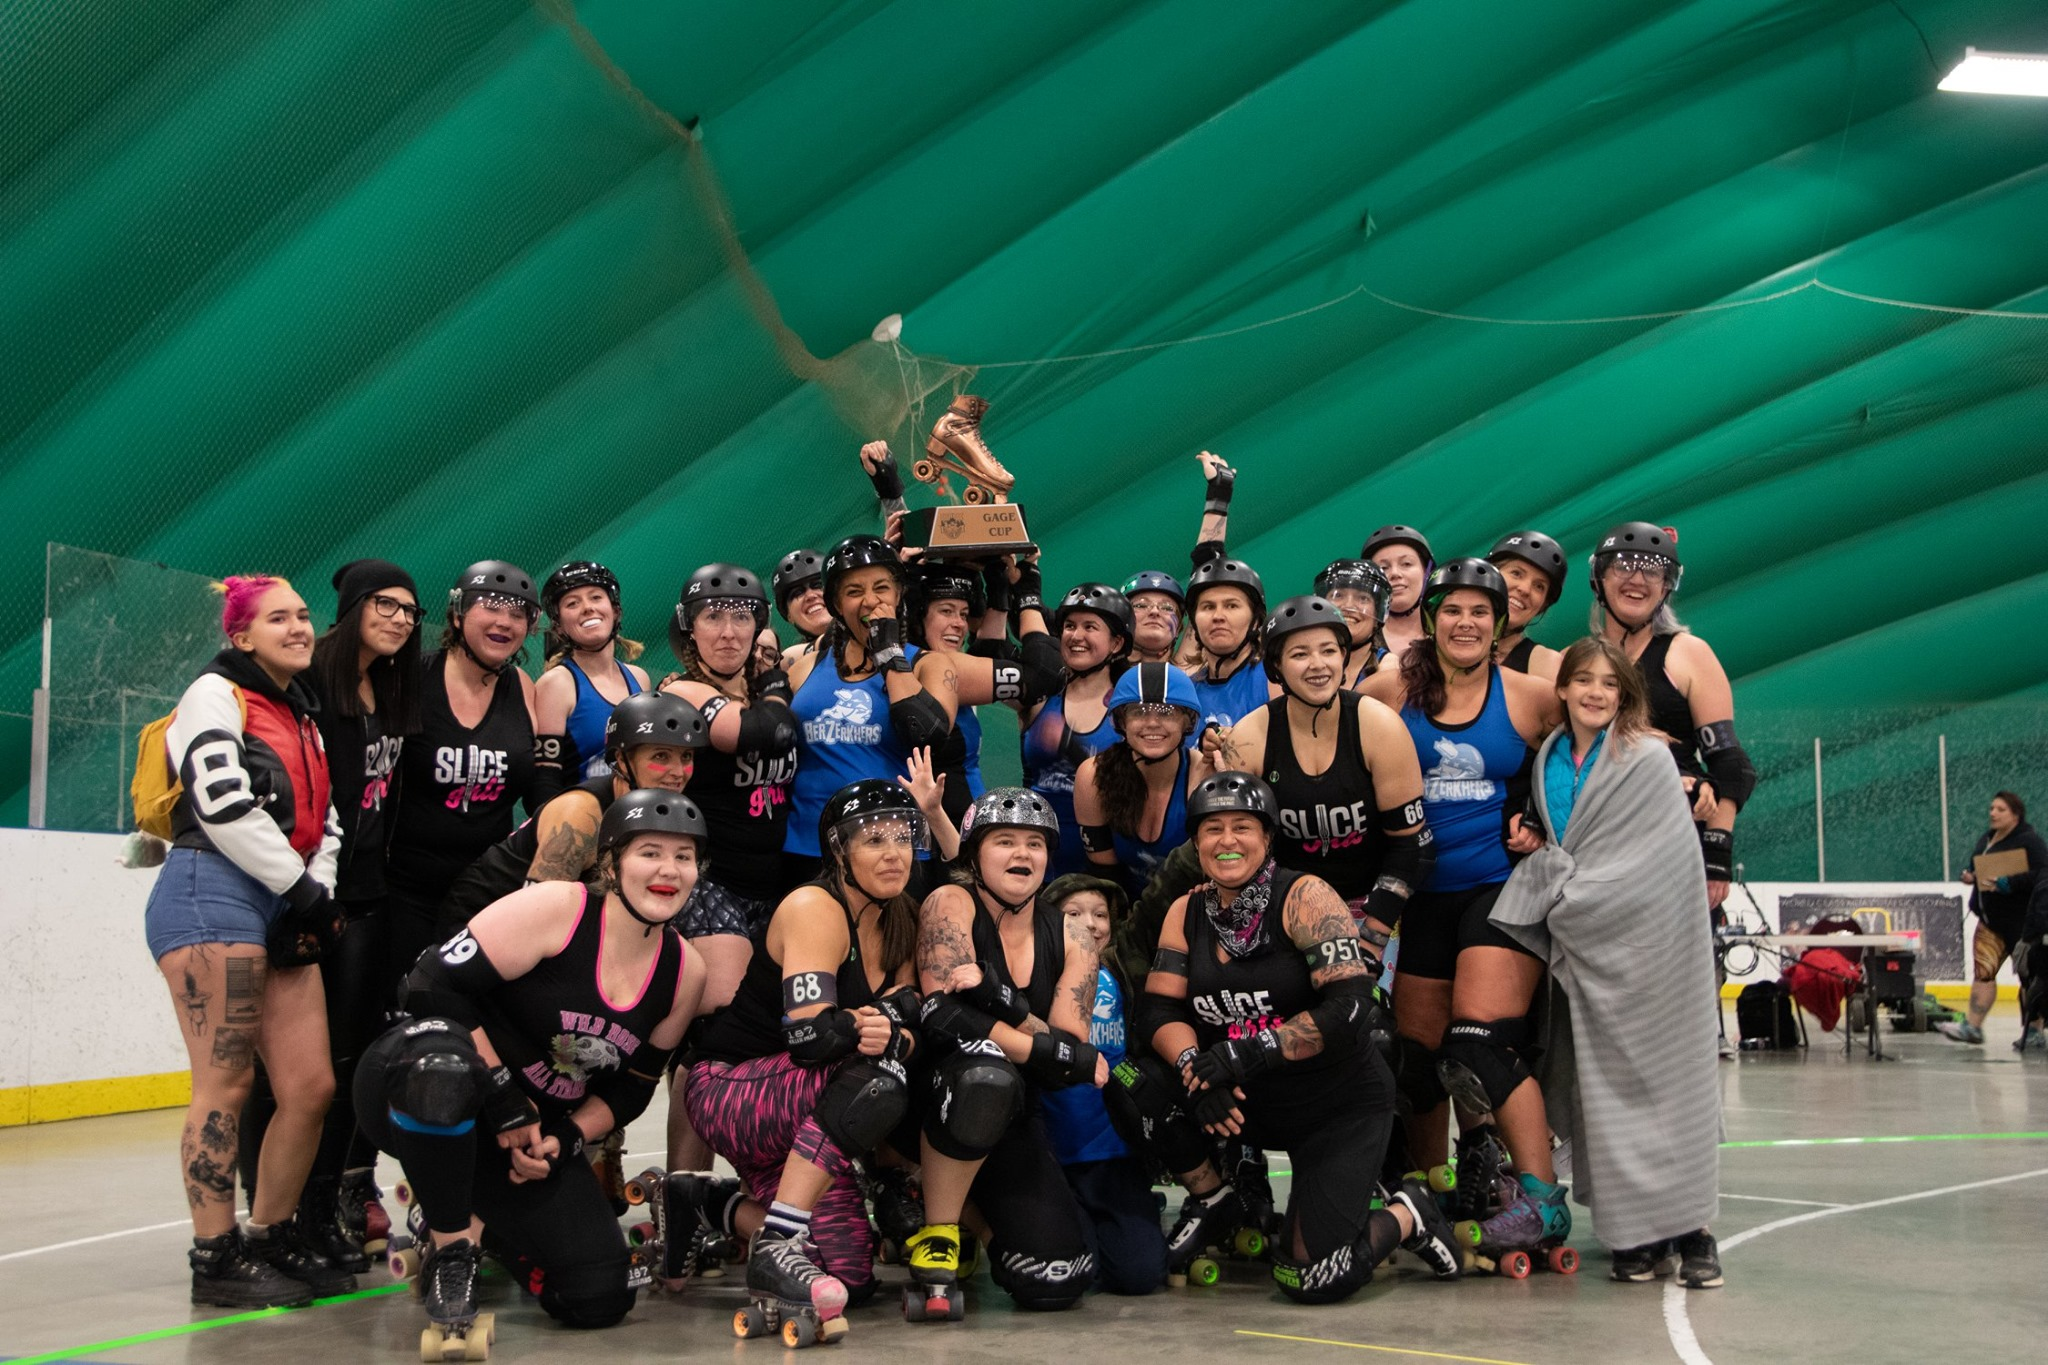 Get to Know E-Ville Roller Derby